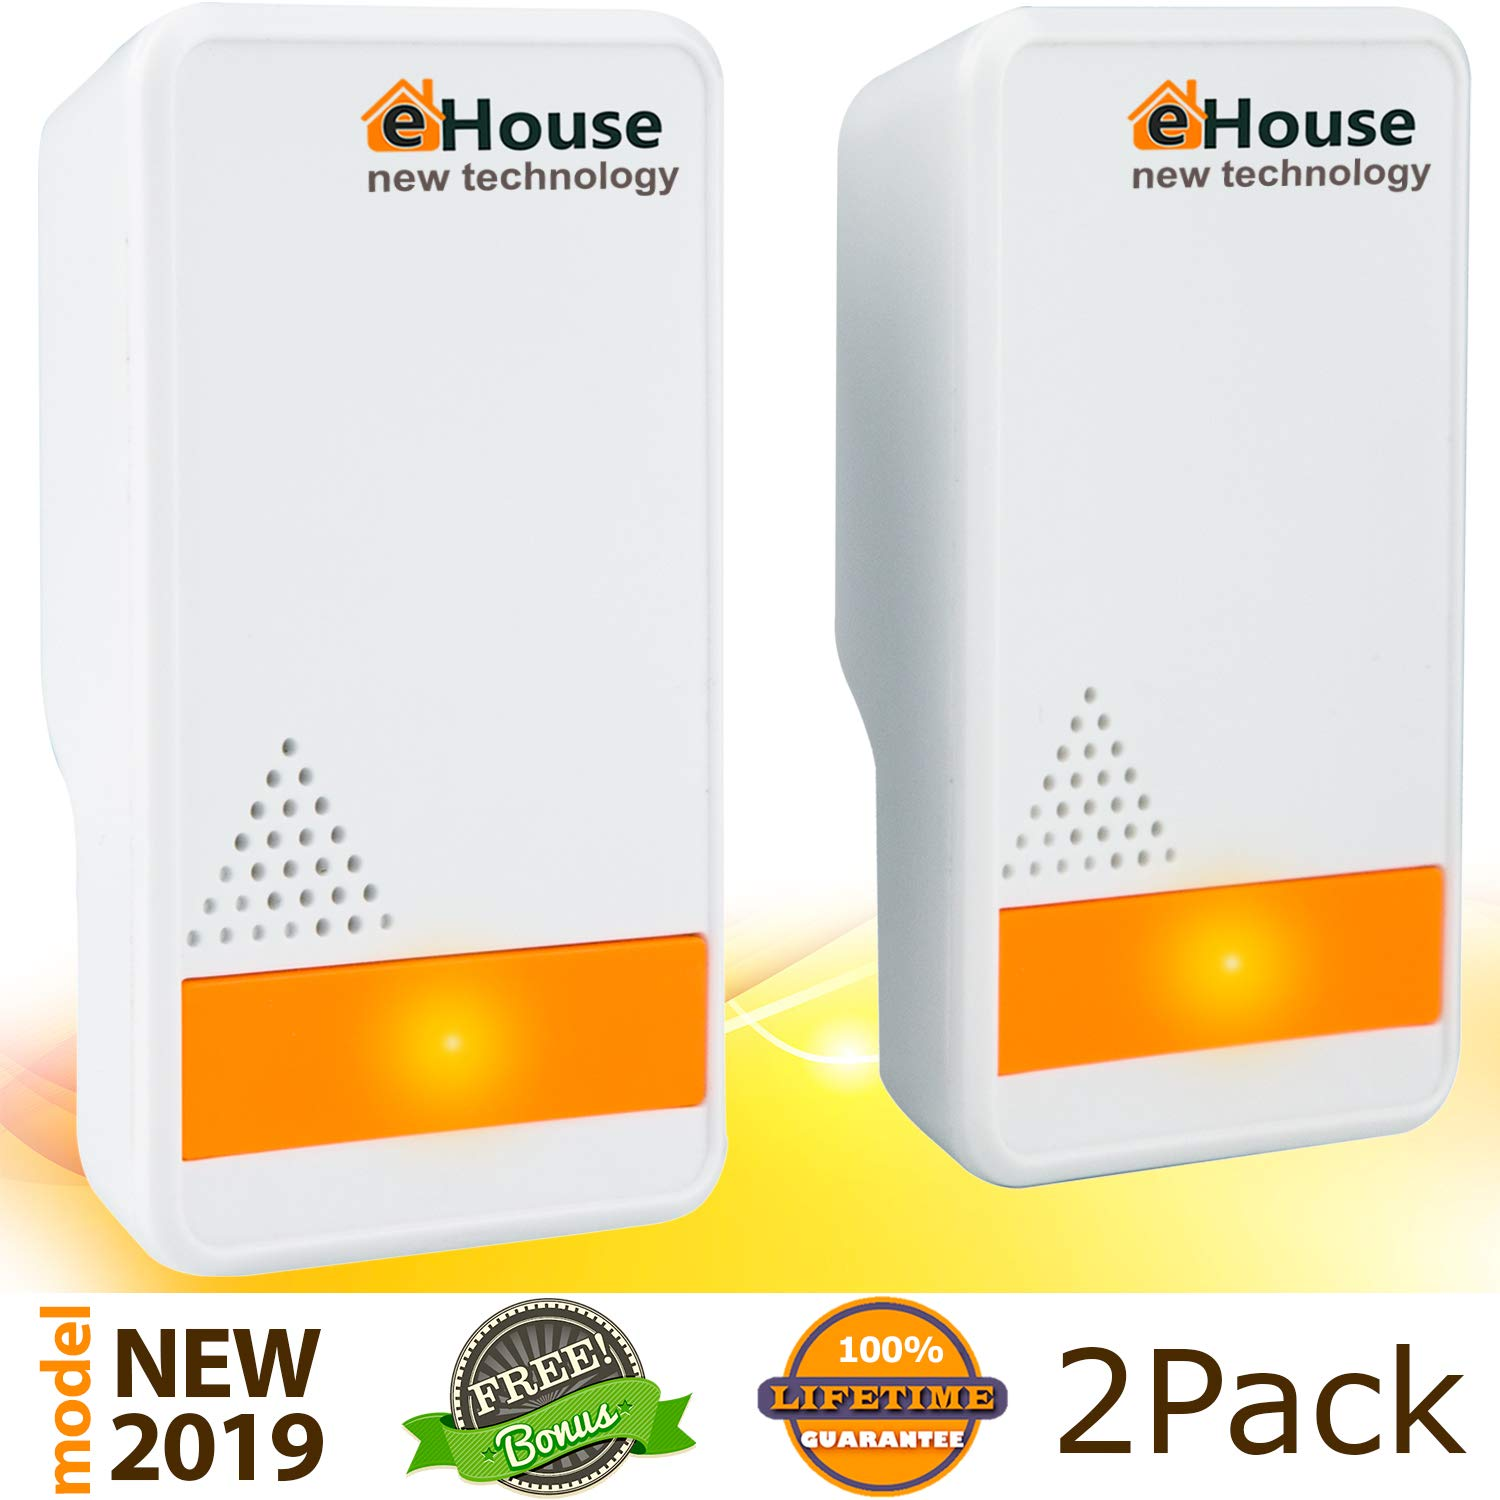 Ultrasonic Pest Repeller - (2 Pack) Electronic Plug in Best Repellent - Pest Control - Get Rid Of - Rodents Squirrels Mice Rats Insects - Roaches Spiders Fleas Bed Bugs Flies Ants Mosquitos Fruit Fly! by EHOUSE